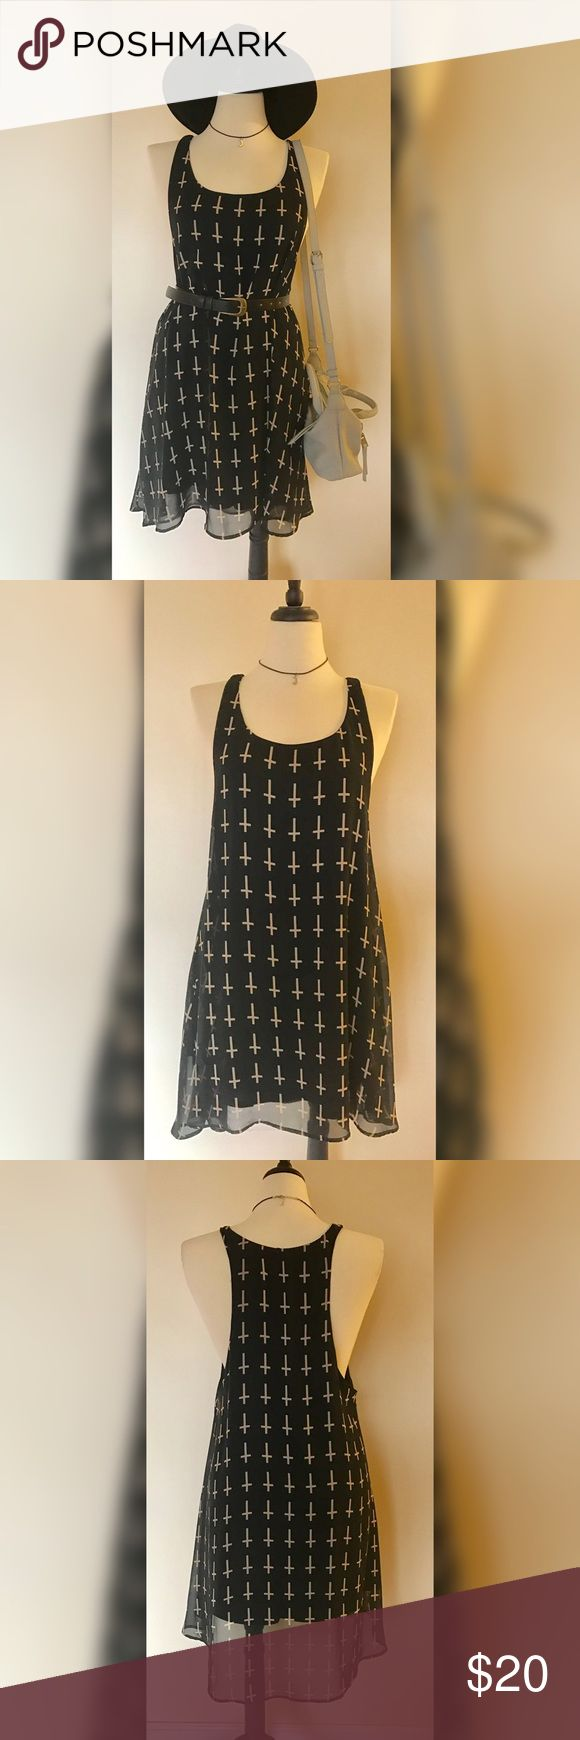 Tobi Black Cross Print High Low Dress Size M/L. Gently used, excellent condition. Purchased from Tobi. Racer back high low dress with deep sides. Pair with a lace bralette and platform boots for an edgy rocker look! (Accessories shown not for sale) Tobi Dresses High Low